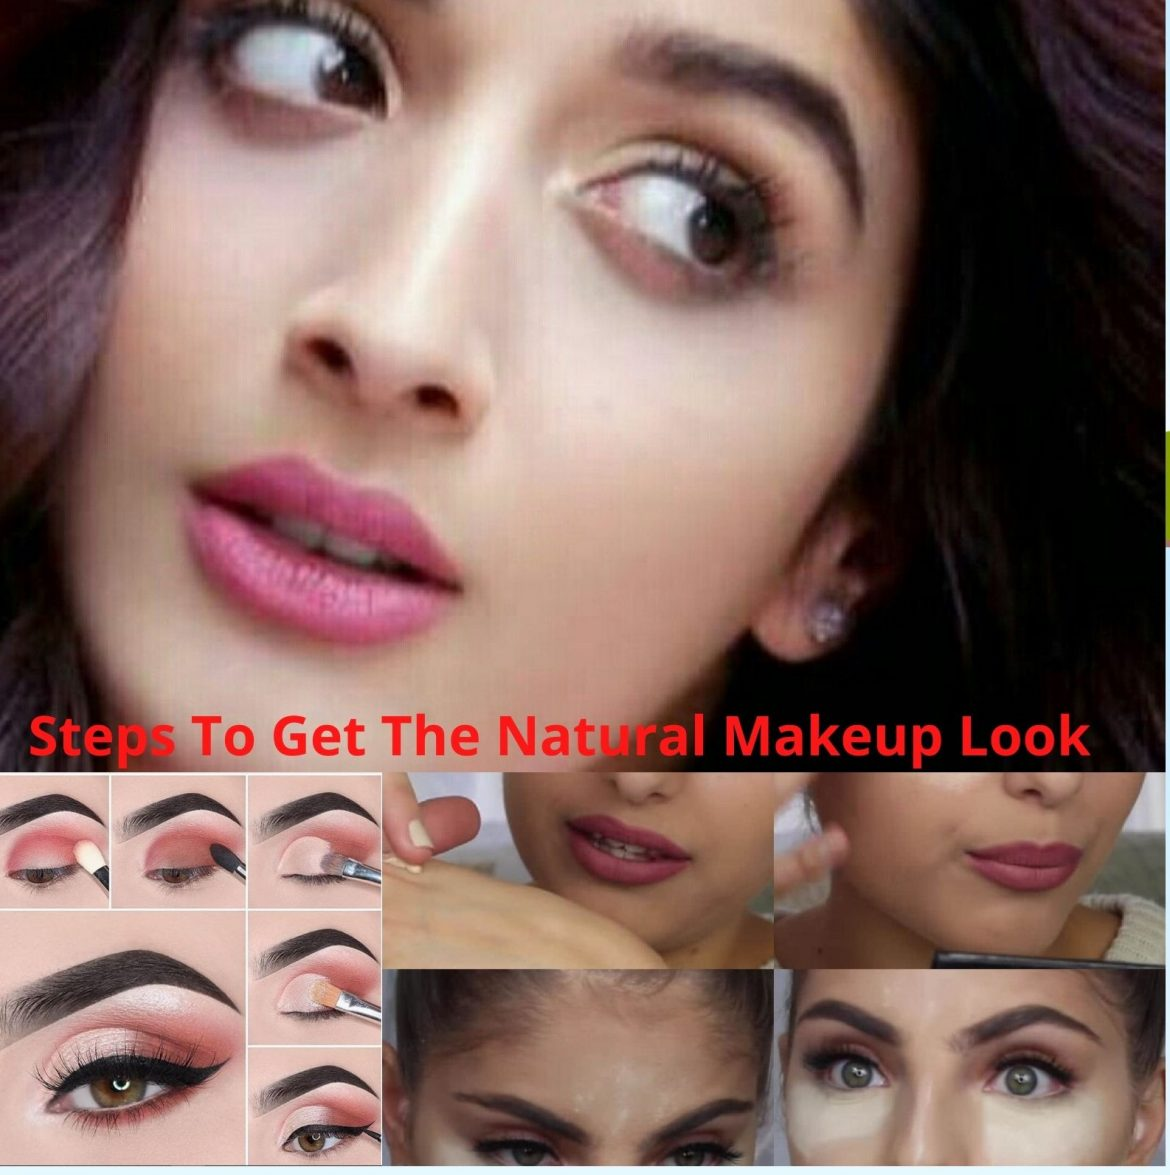 Steps To Get The Natural Makeup Look